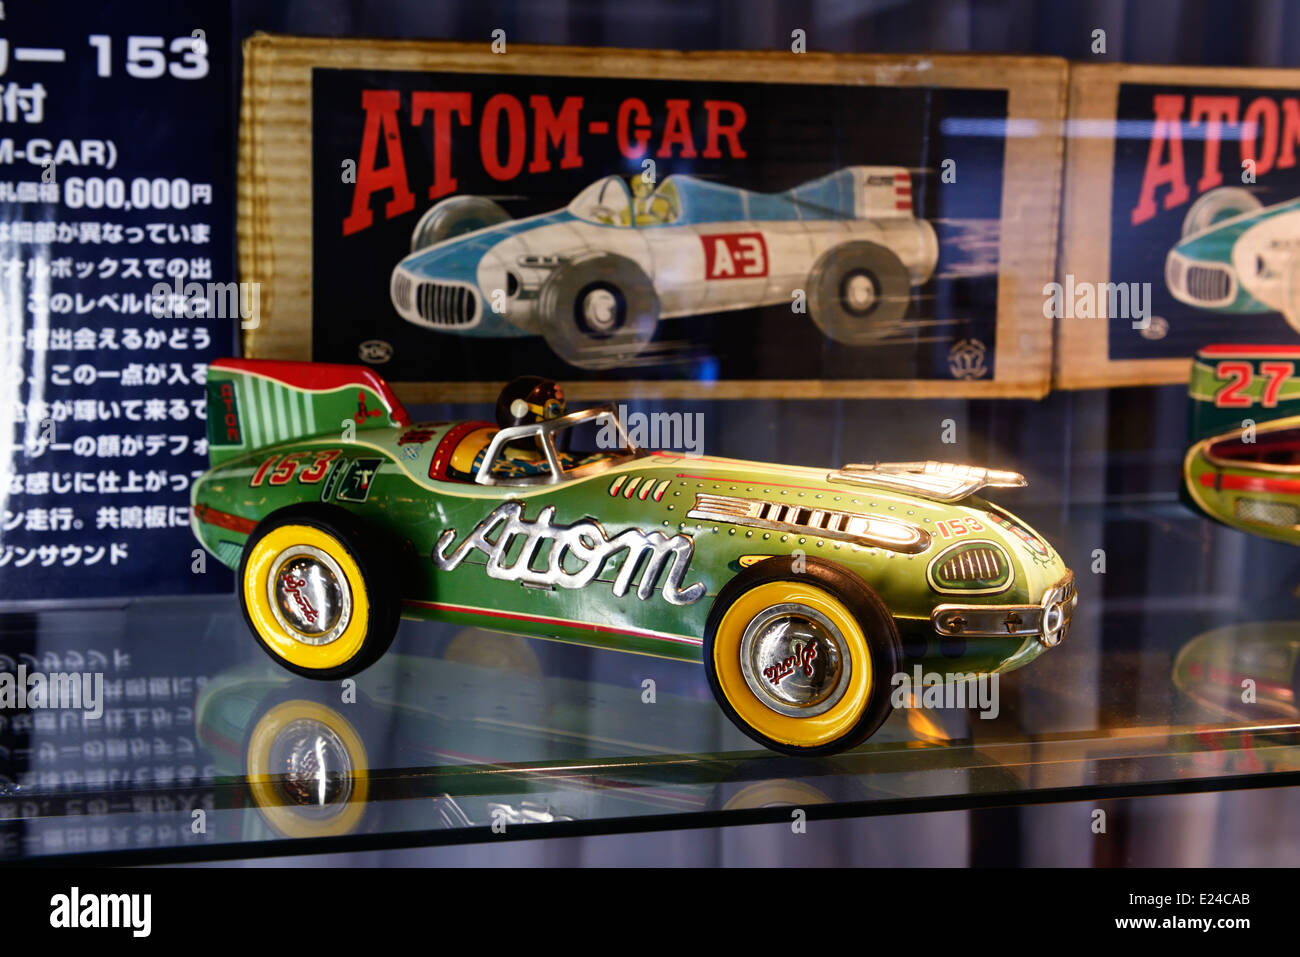 Atom car antique collectible toy race car at a store in Tokyo, Japan - Stock Image